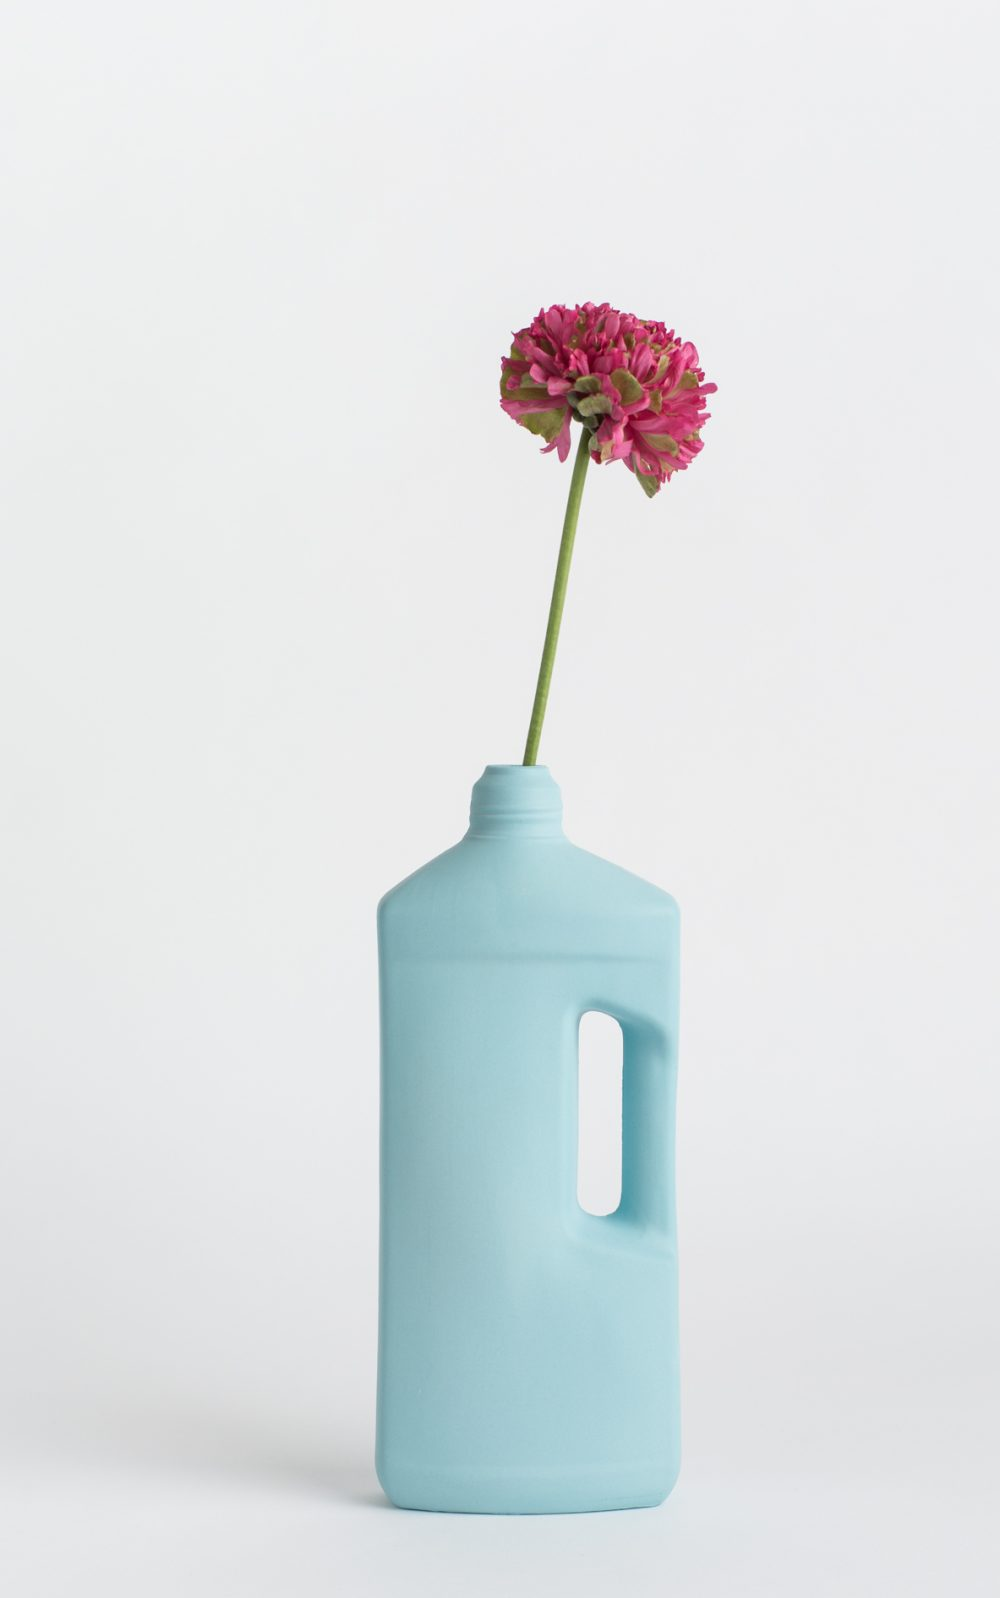 bottle vase #3 light blue with flower